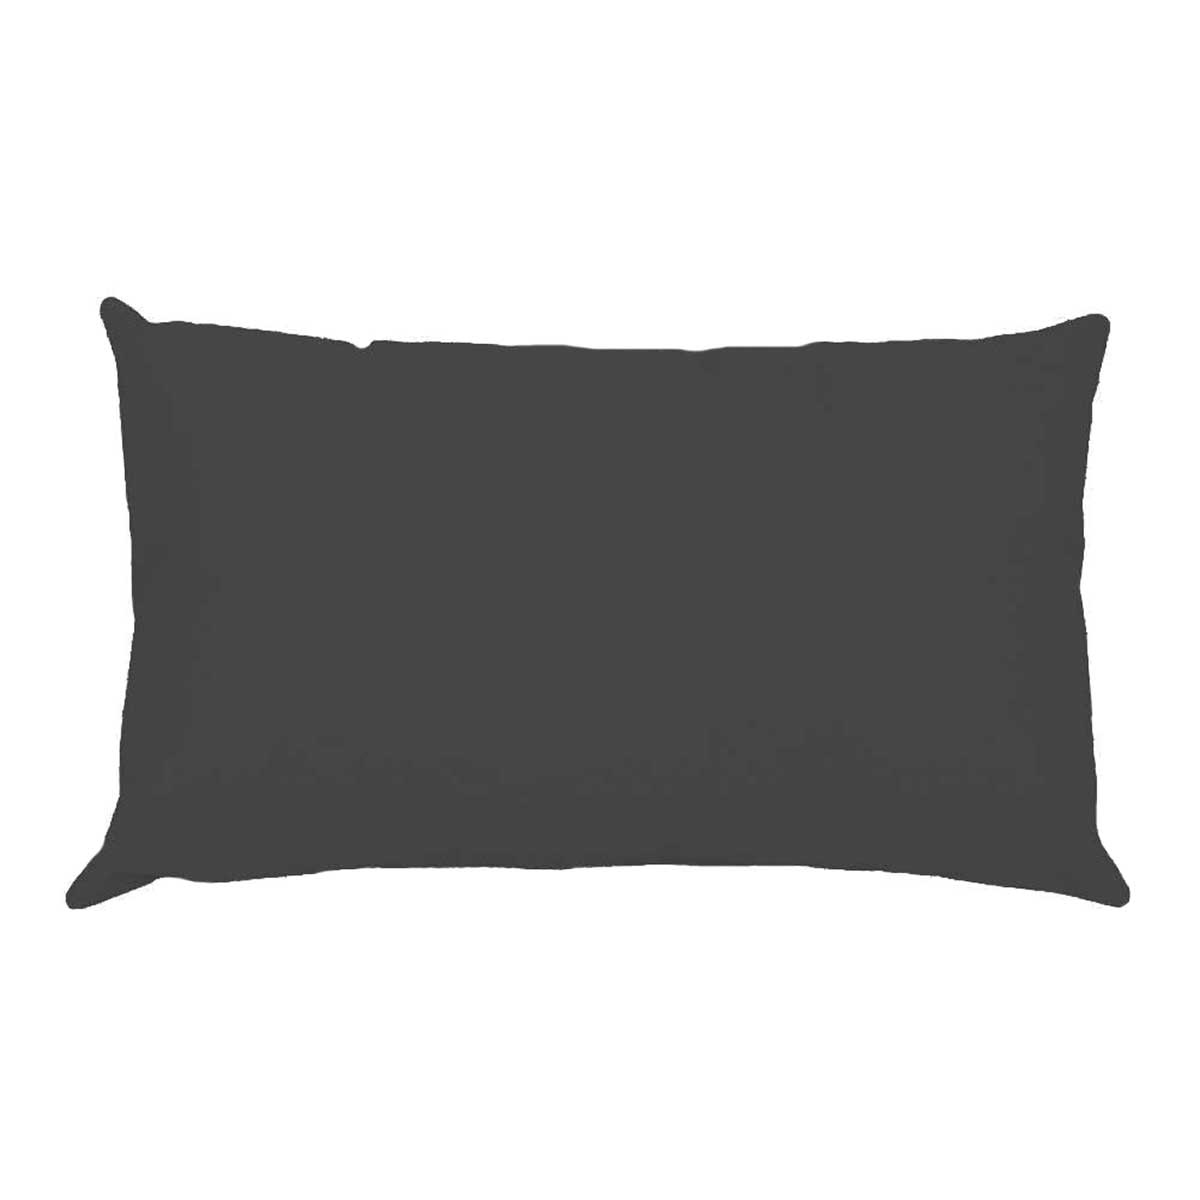 Taie d'oreiller percale 50 x 70 cm unie (Anthracite)